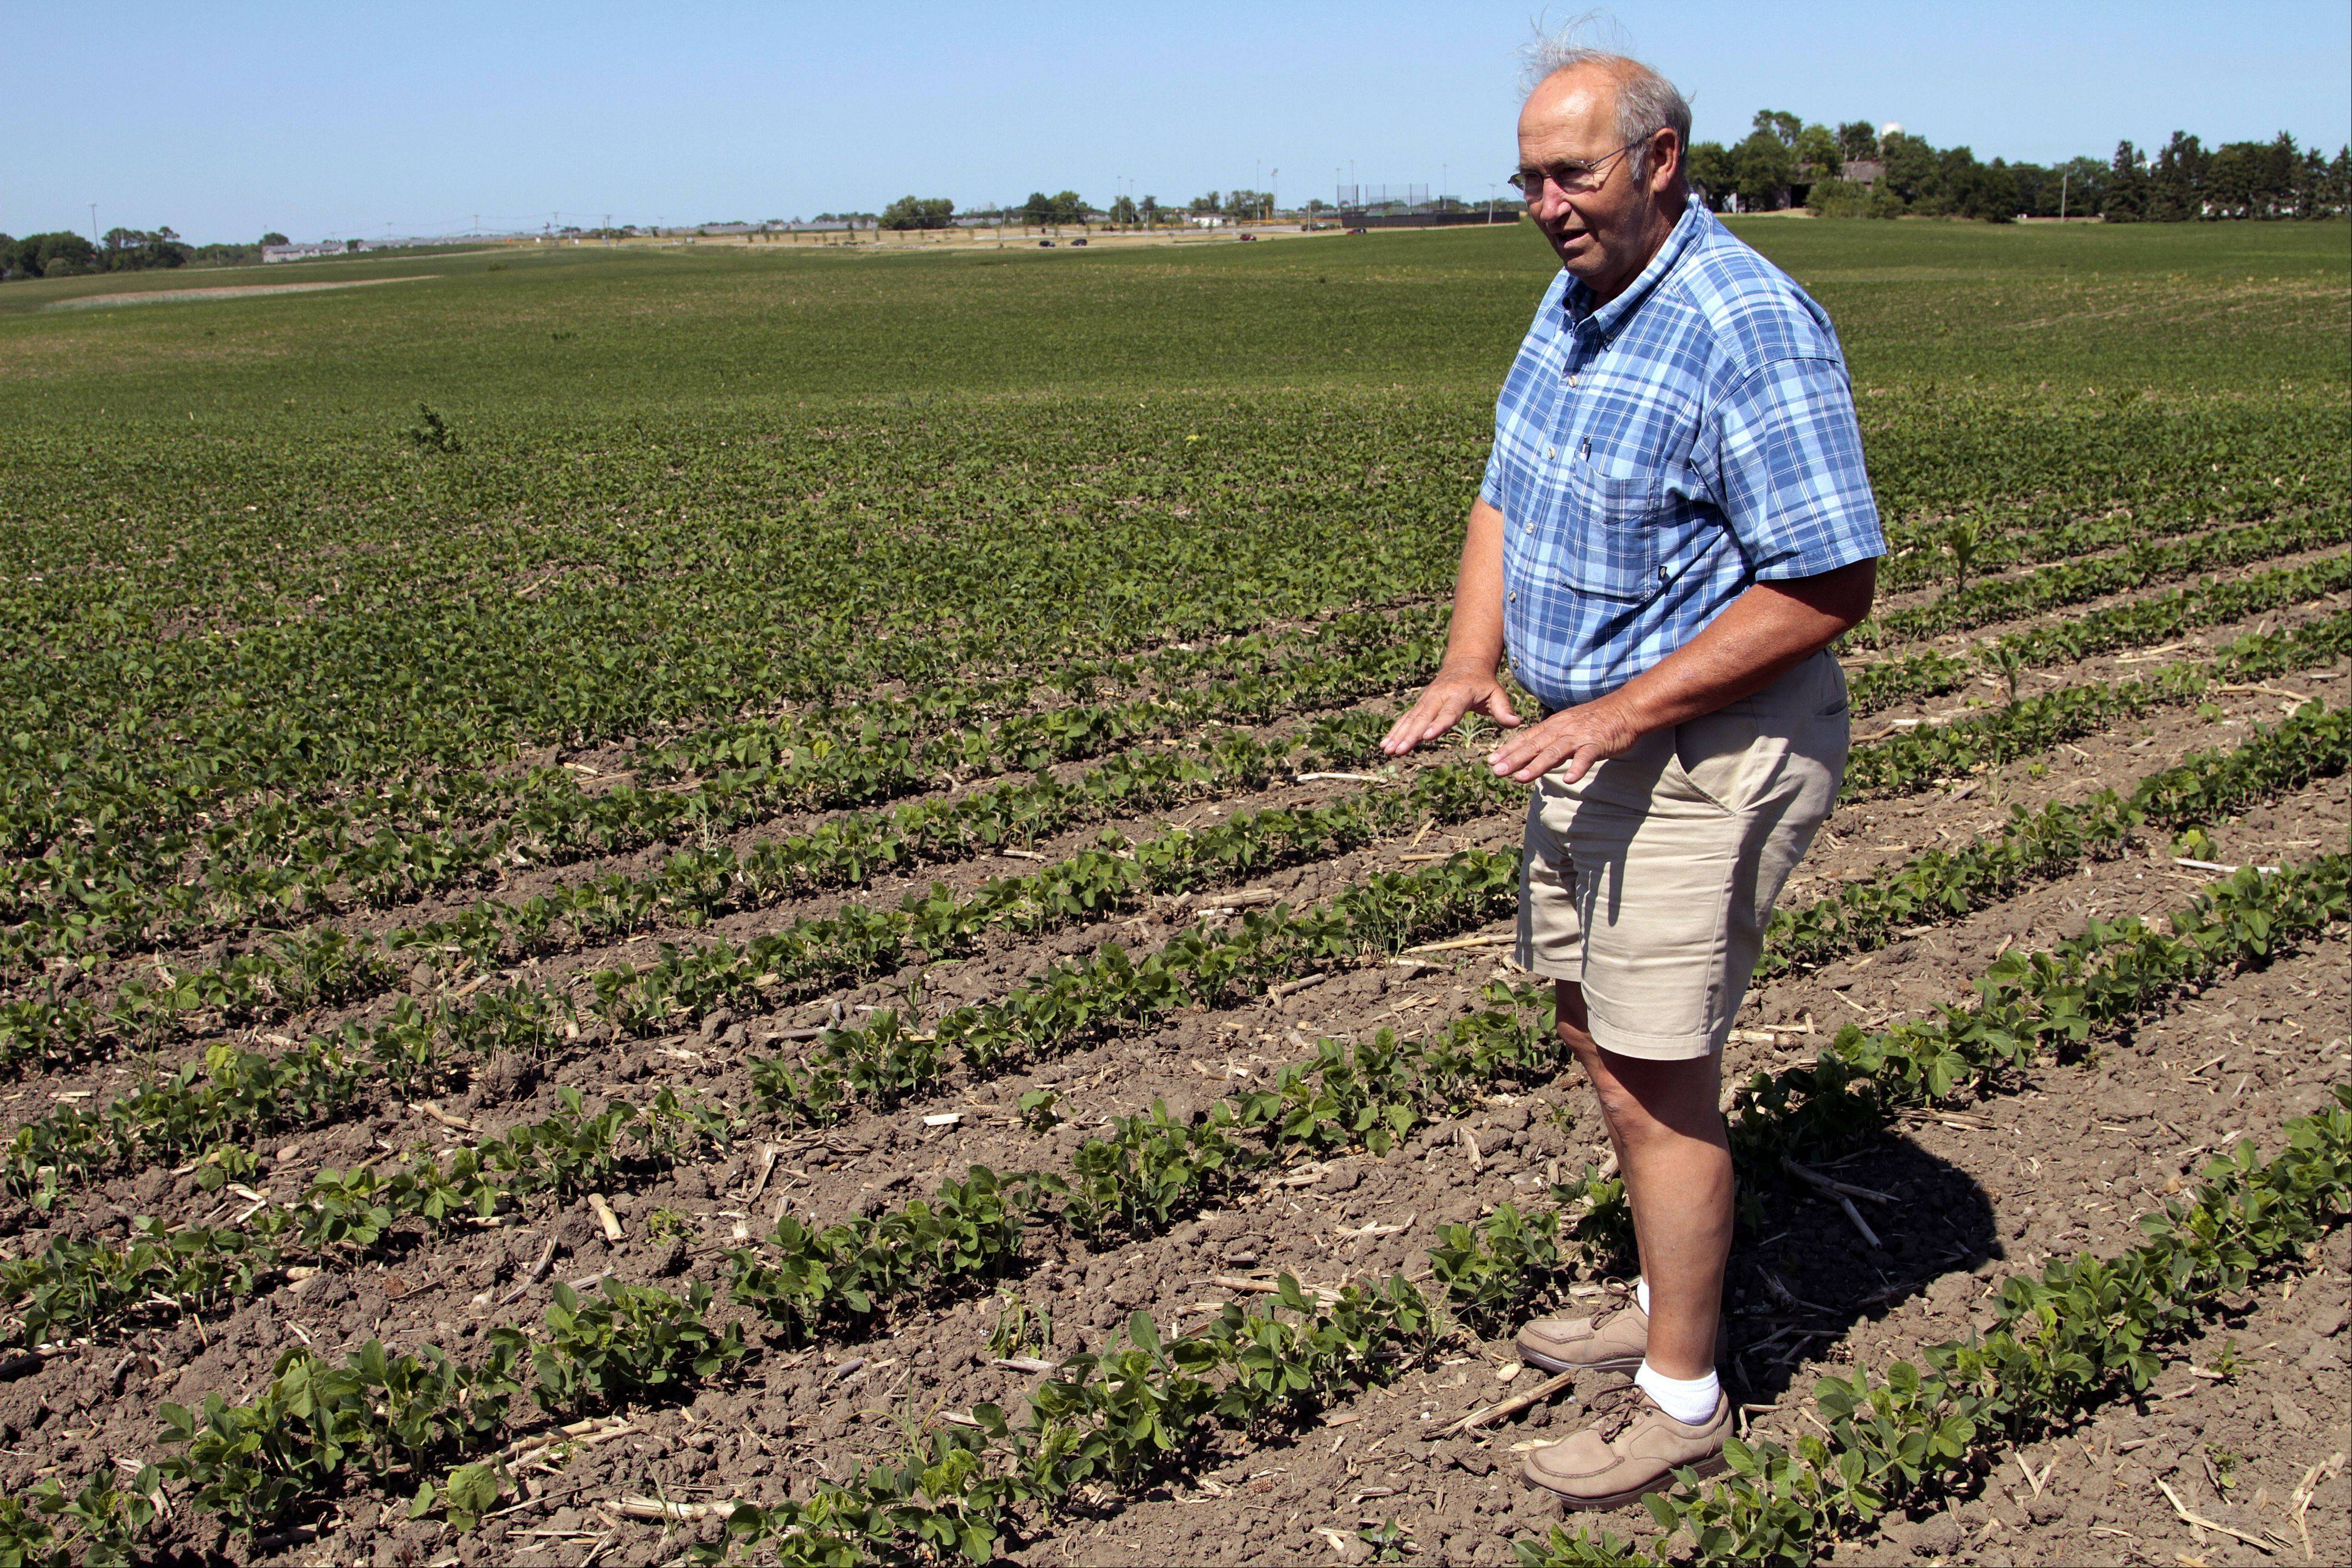 Lake County farmer Pete Tekampe examines one of his soybean fields near Grayslake that has been affected by the recent drought.